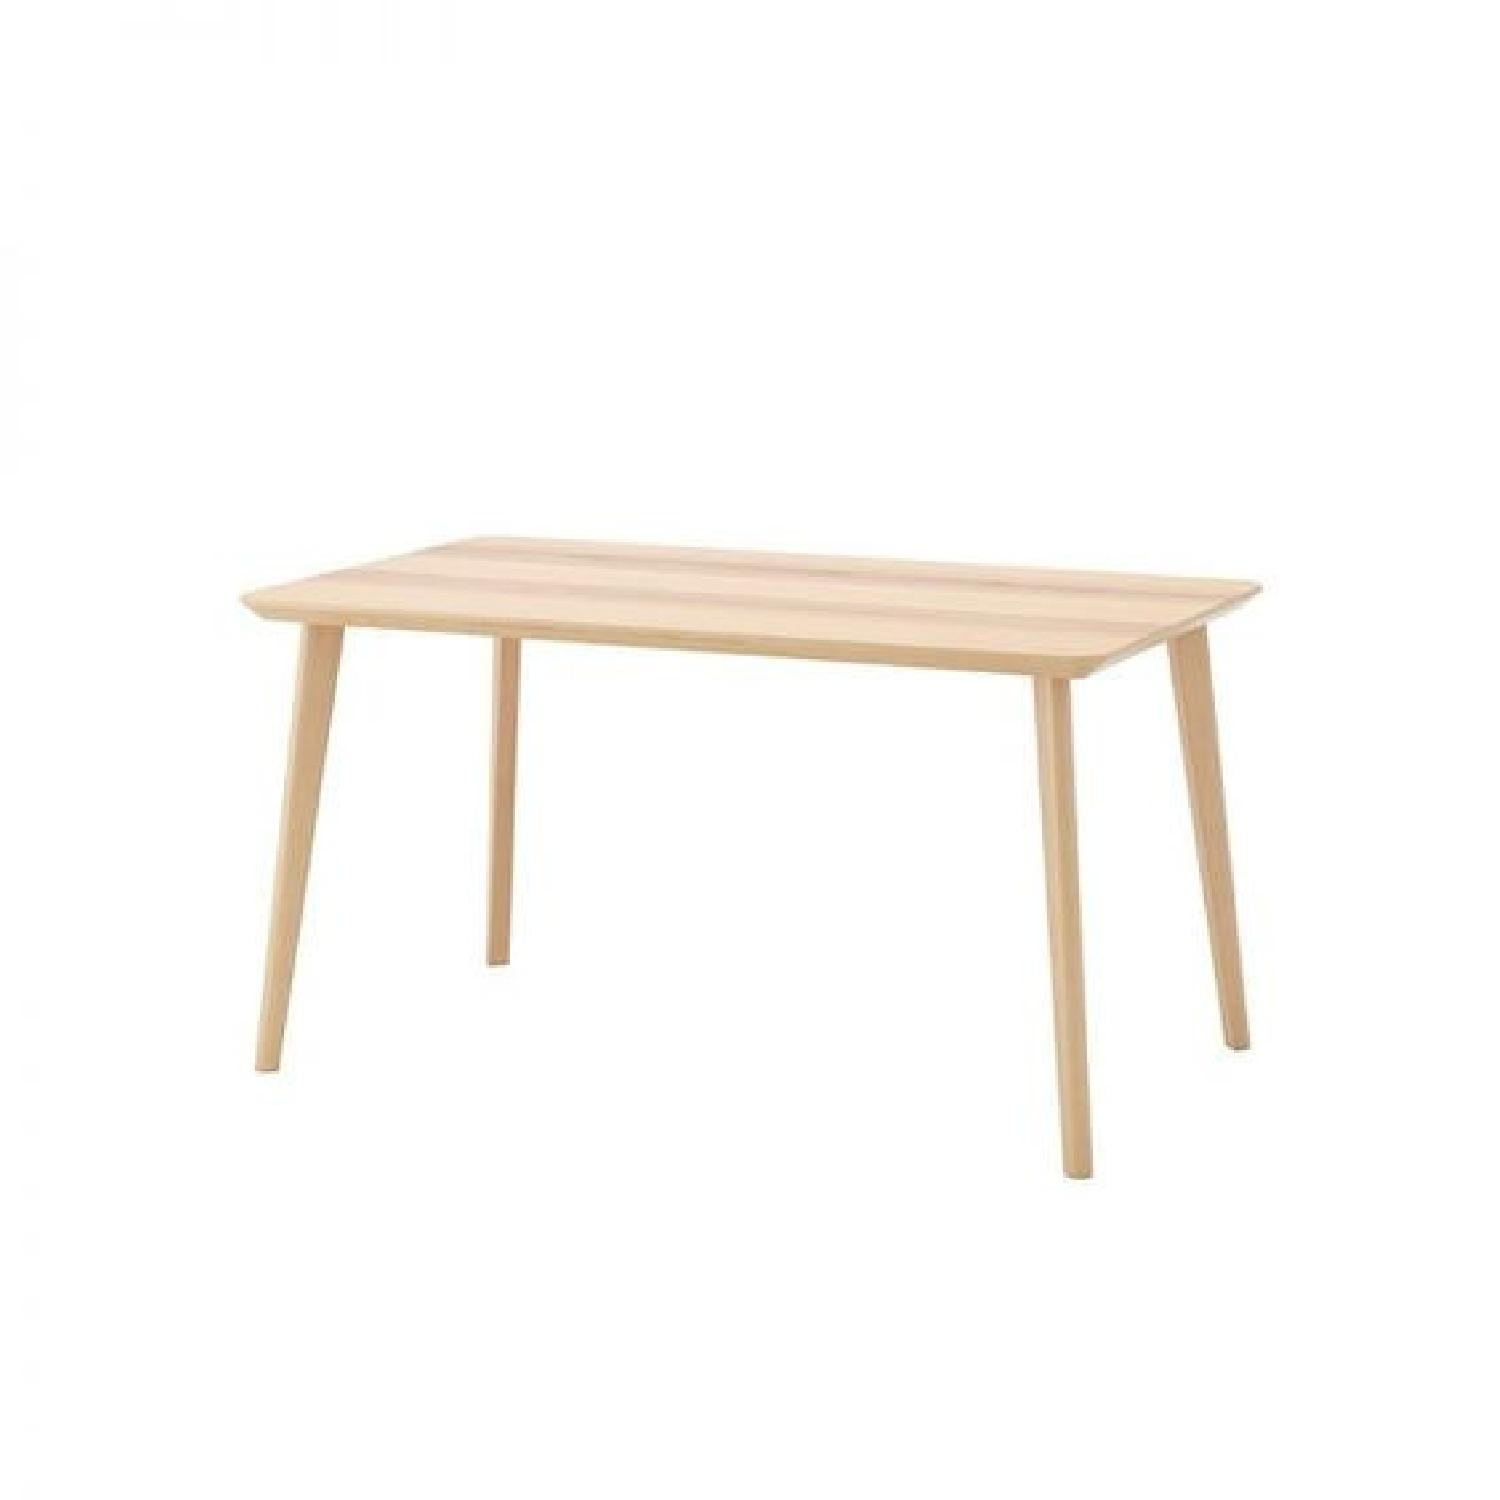 Ikea Lisabo Dining Table w/ 4 Norrnas Chairs - image-0